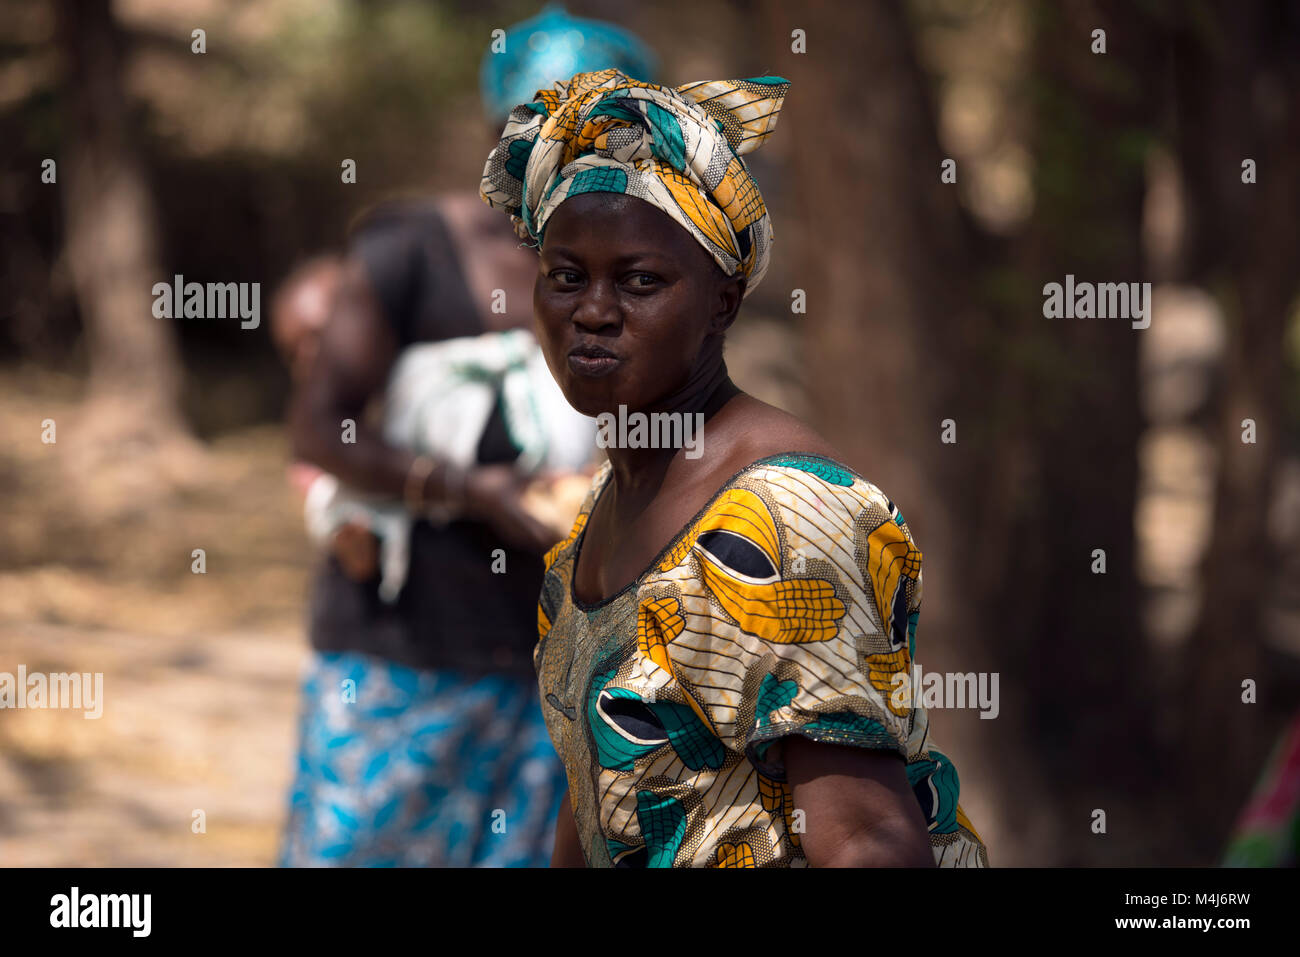 A Mandinka (Mandingo) woman in traditional dress performs traditional dancing in Bintang, The Gambia, West Africa. - Stock Image